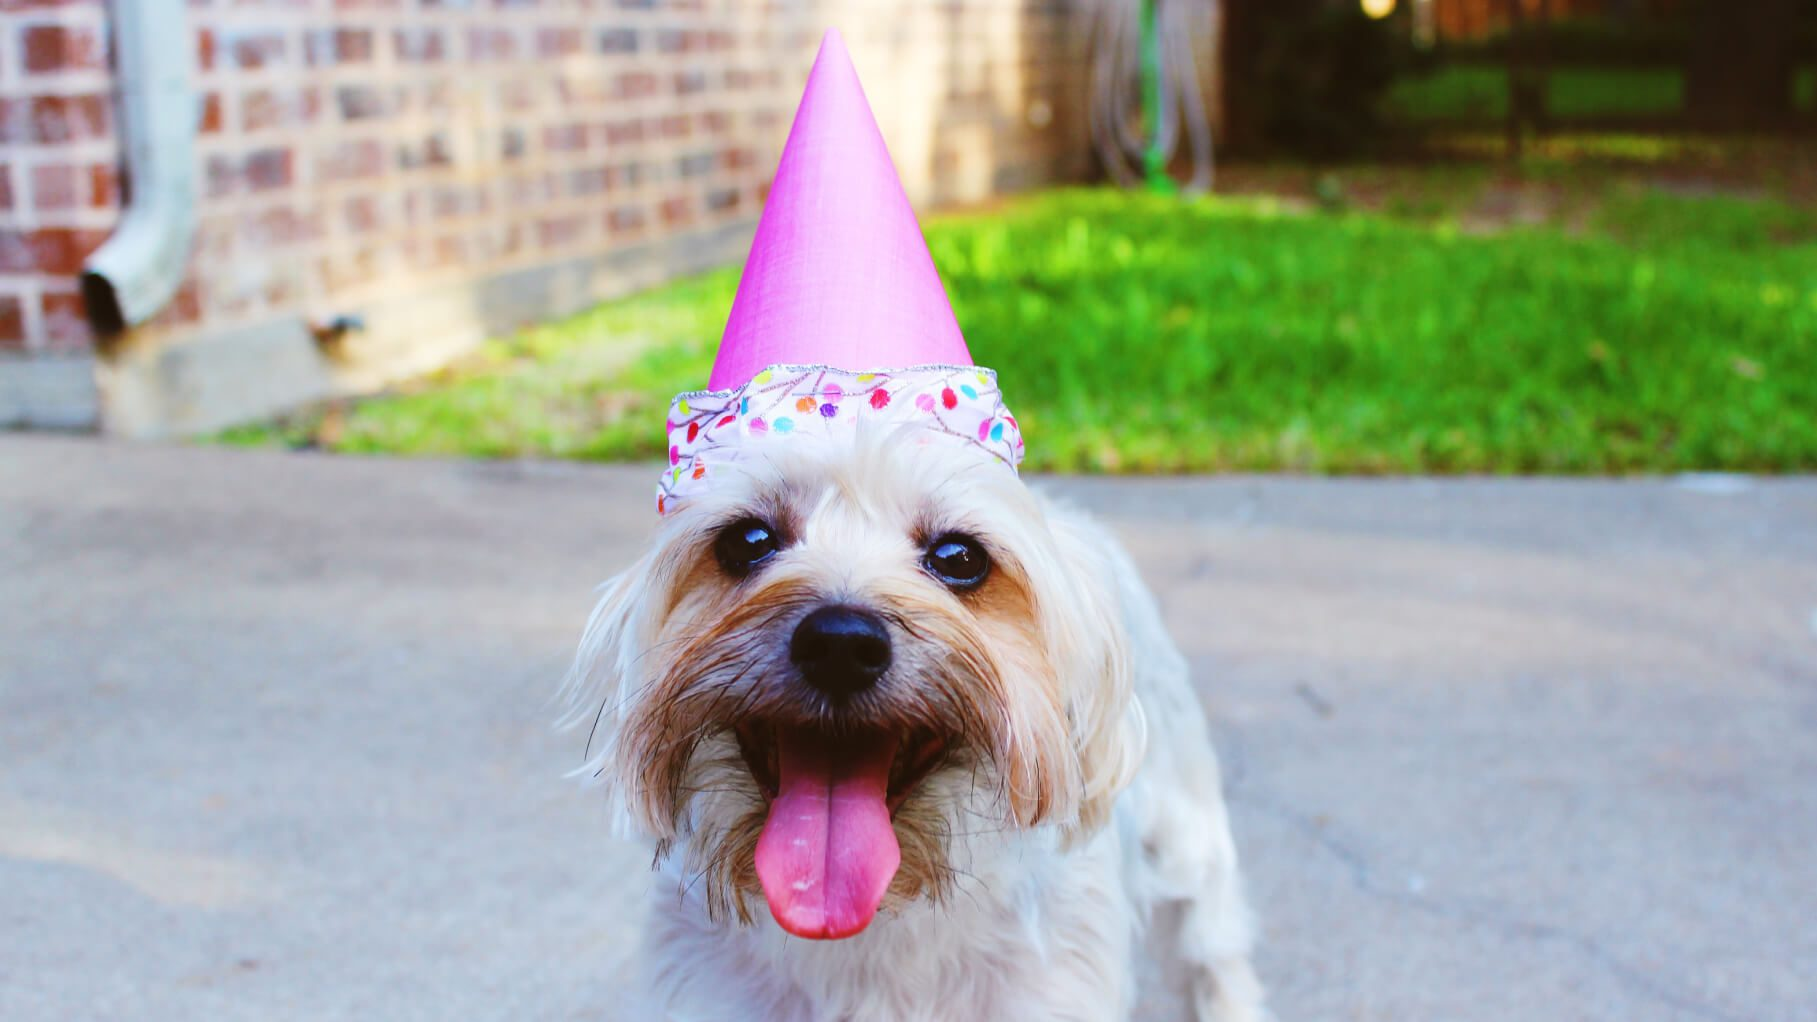 a small dog in a party hat